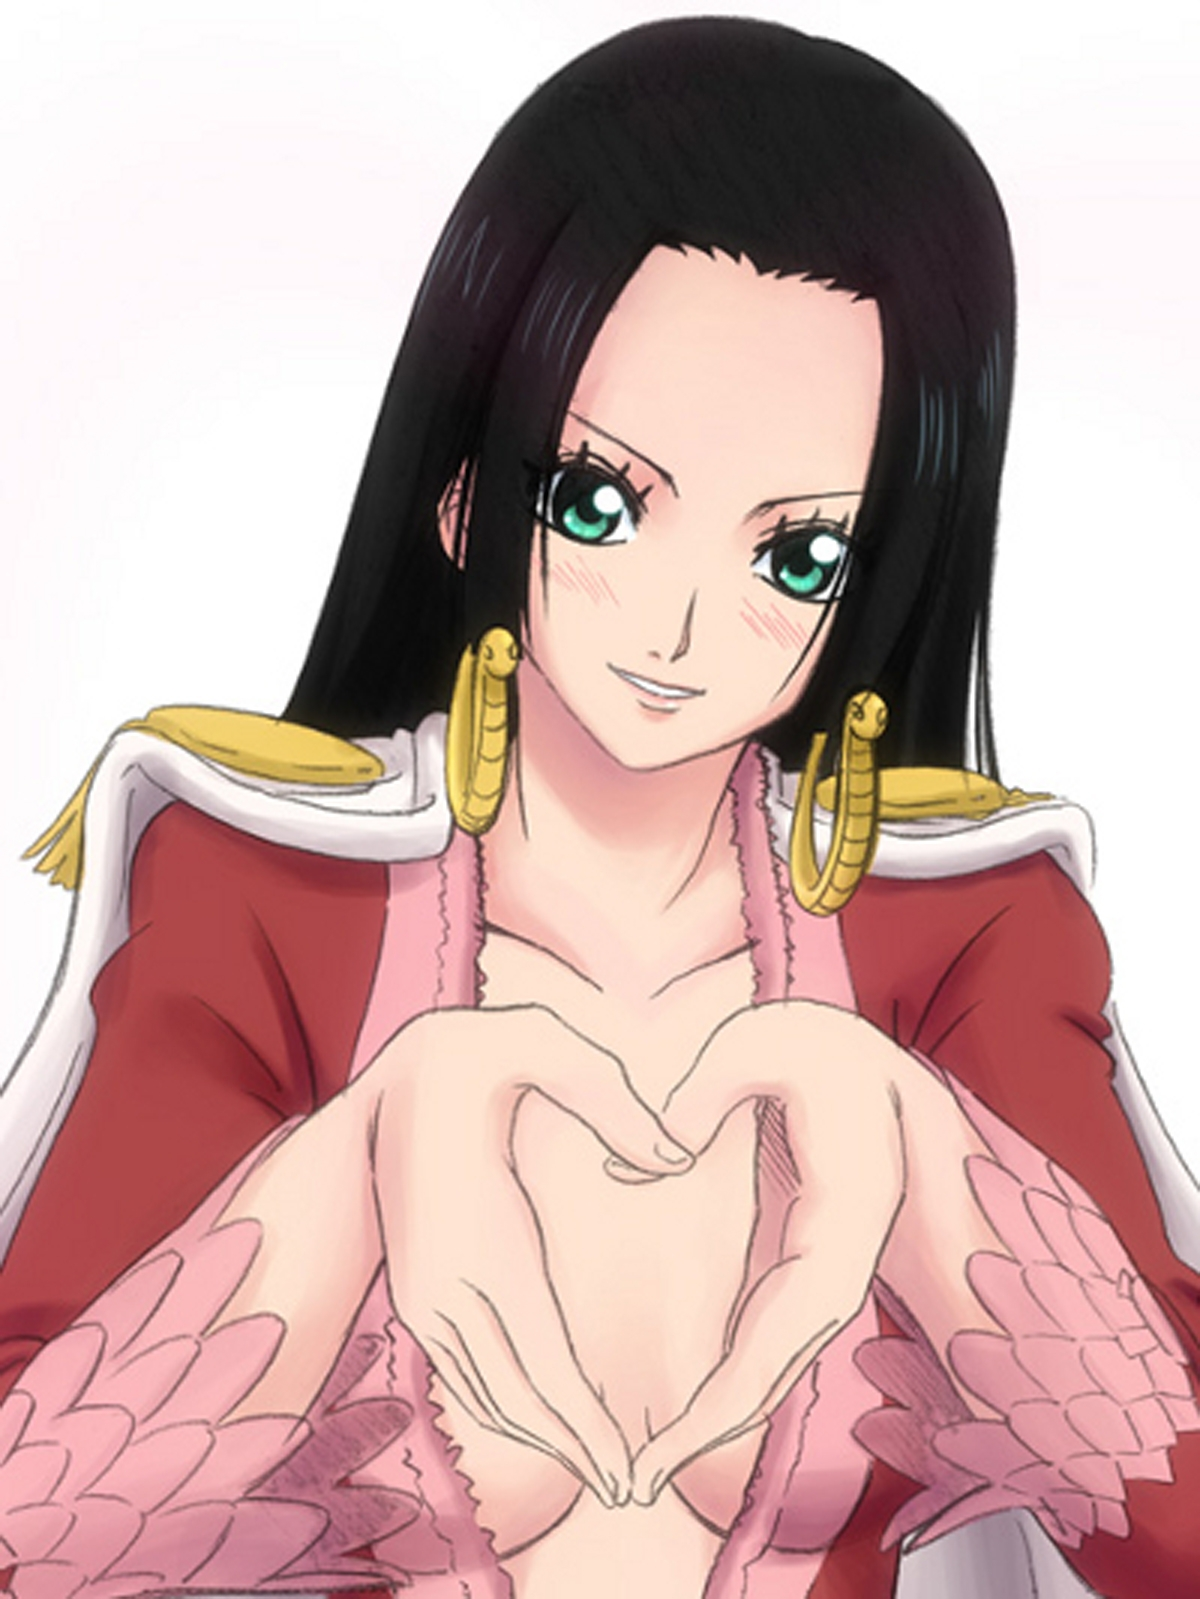 Toon sex pic ##00013061810 aqua eyes black hair boa hancock cape earrings female heart high resolution long hair looking at viewer one piece red jacket simple background solo white background